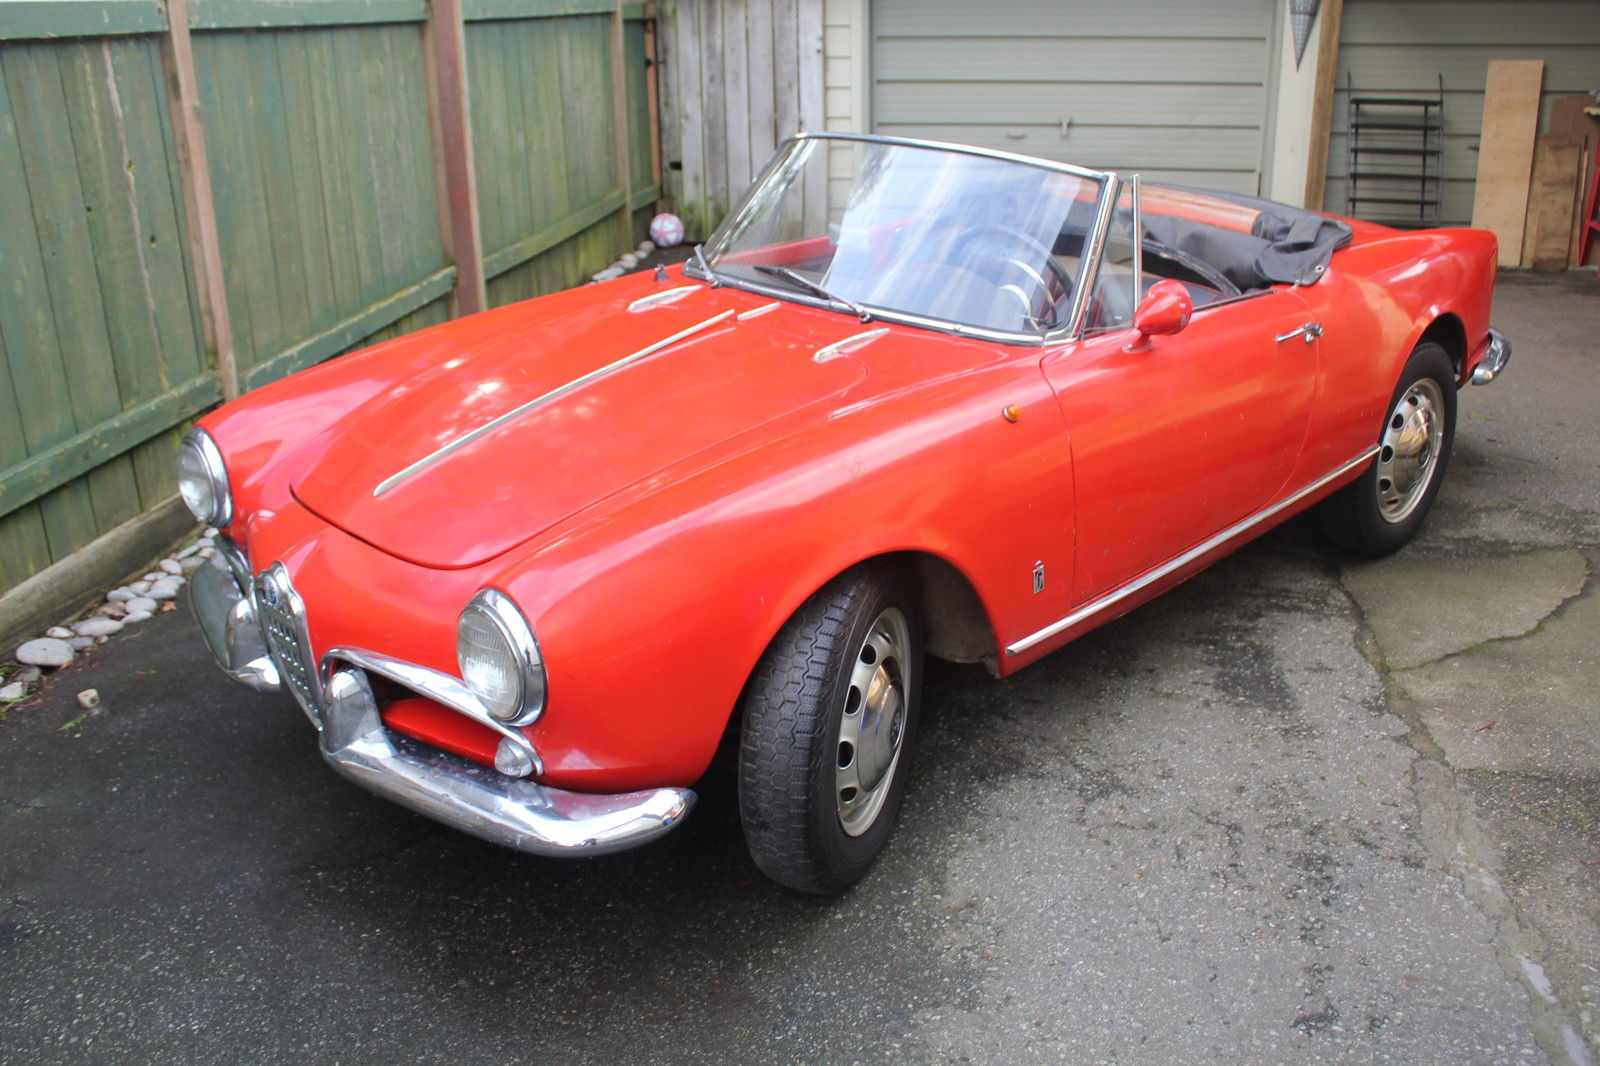 1961 alfa romeo spider normale 101 for sale - Alfa romeo coupe for sale ...